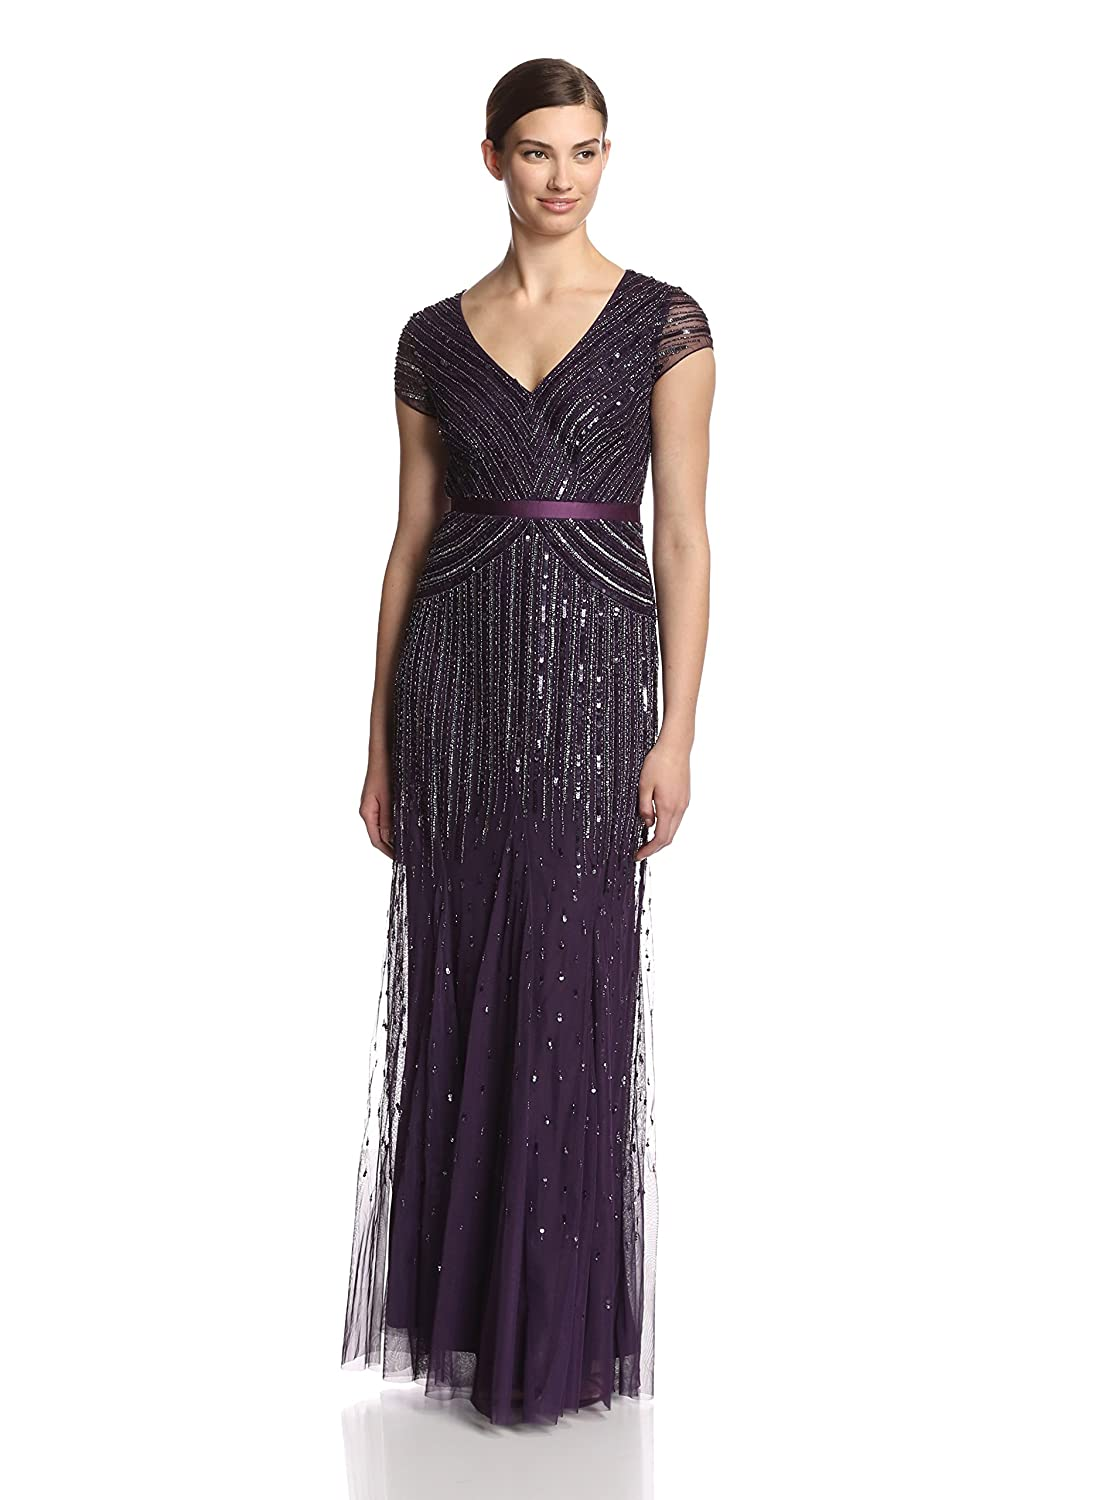 Adrianna Papell Womens Long Beaded V-Neck Dress With Cap Sleeves and Waistband